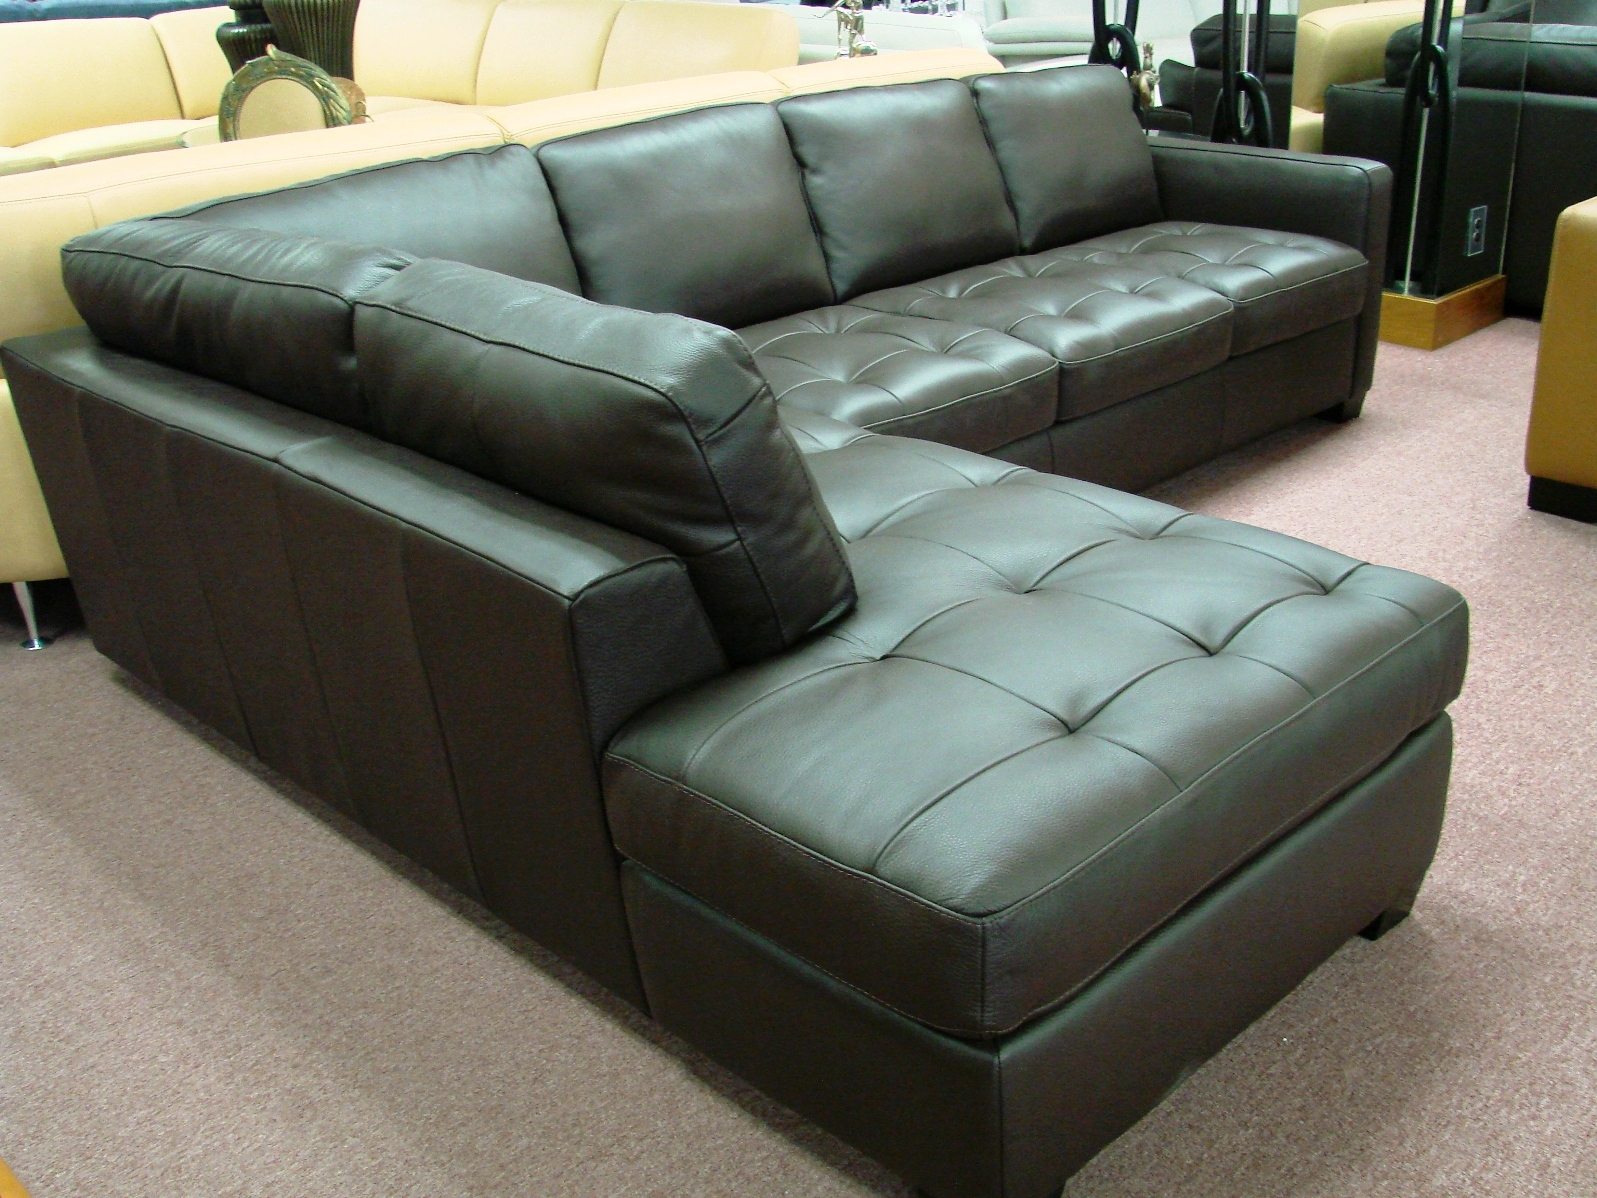 Sofa Leather Sale Cat Friendly Sofas Uk Natuzzi And Sectionals By Interior Concepts